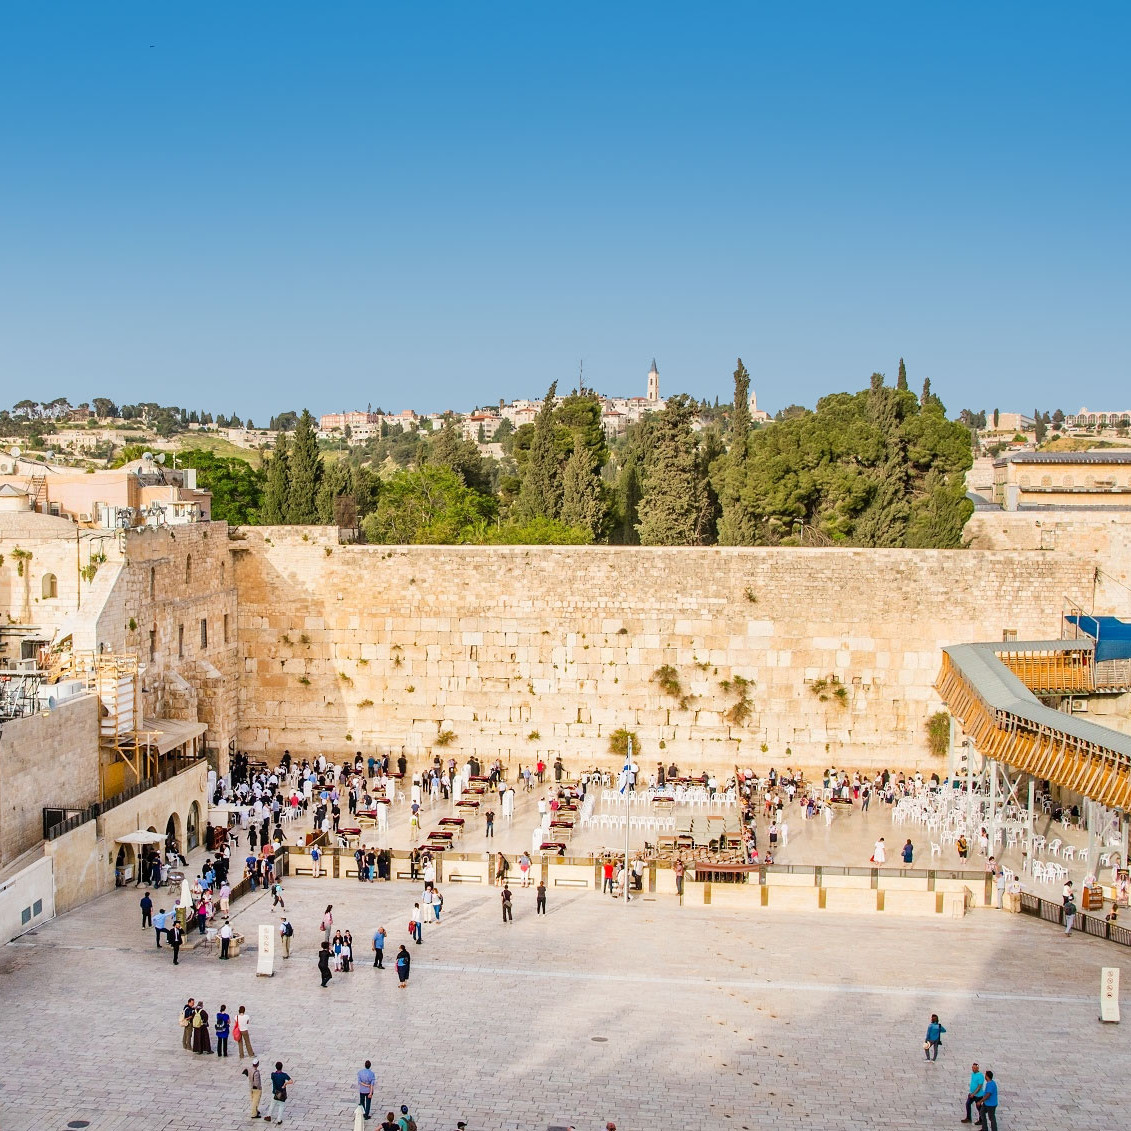 Western wall israel asia travel guide